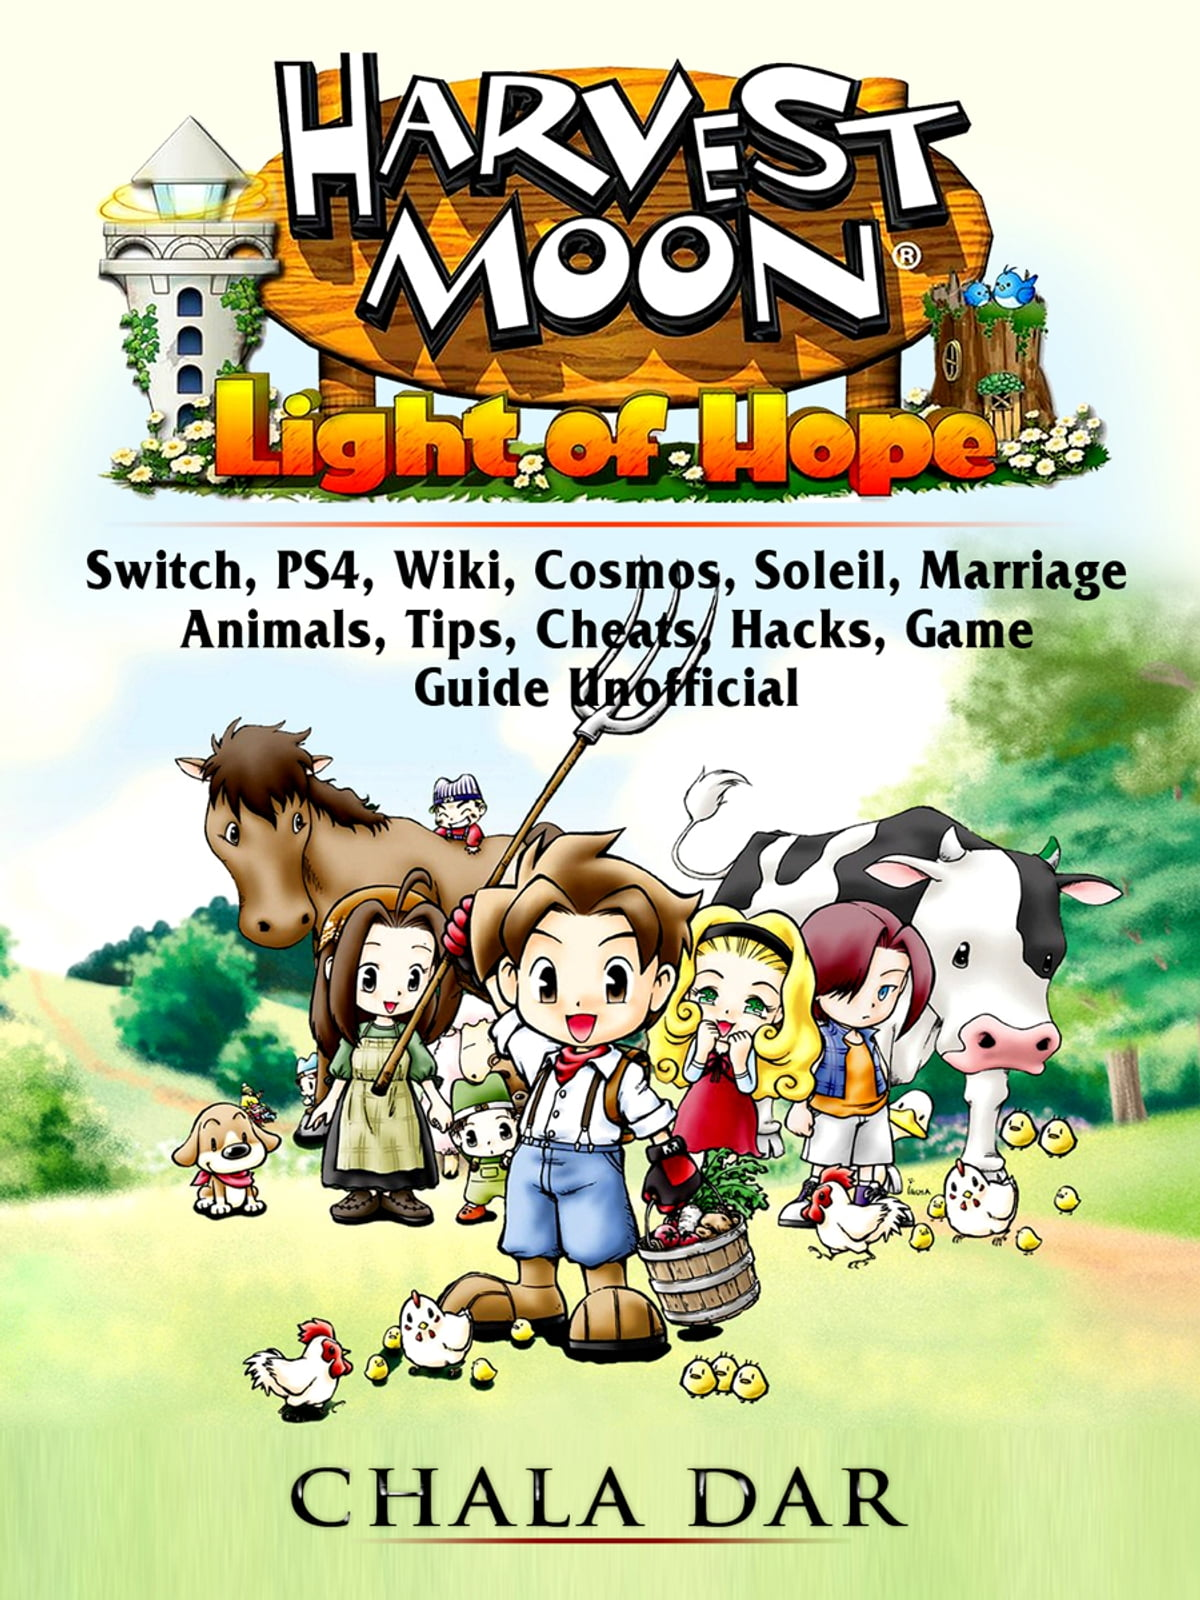 Harvest Moon Light of Hope, Switch, PS4, Wiki, Cosmos, Soleil, Marriage,  Animals, Tips, Cheats, Hacks, Game Guide Unofficial ebook by Chala Dar -